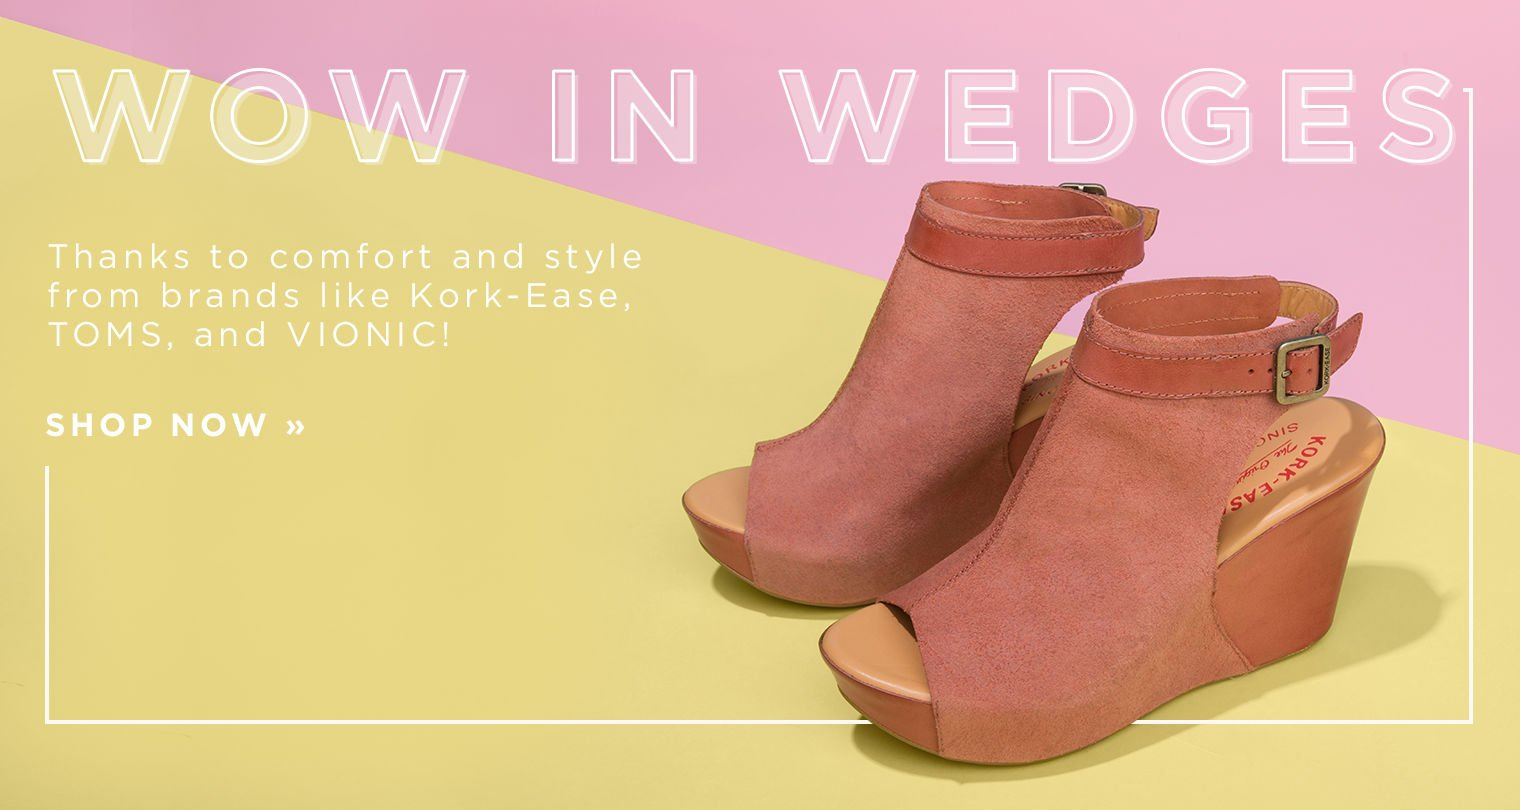 Wow in wedges. Thanks to comfort and style from brands like Kork-Ease, TOMS, and Vionic!